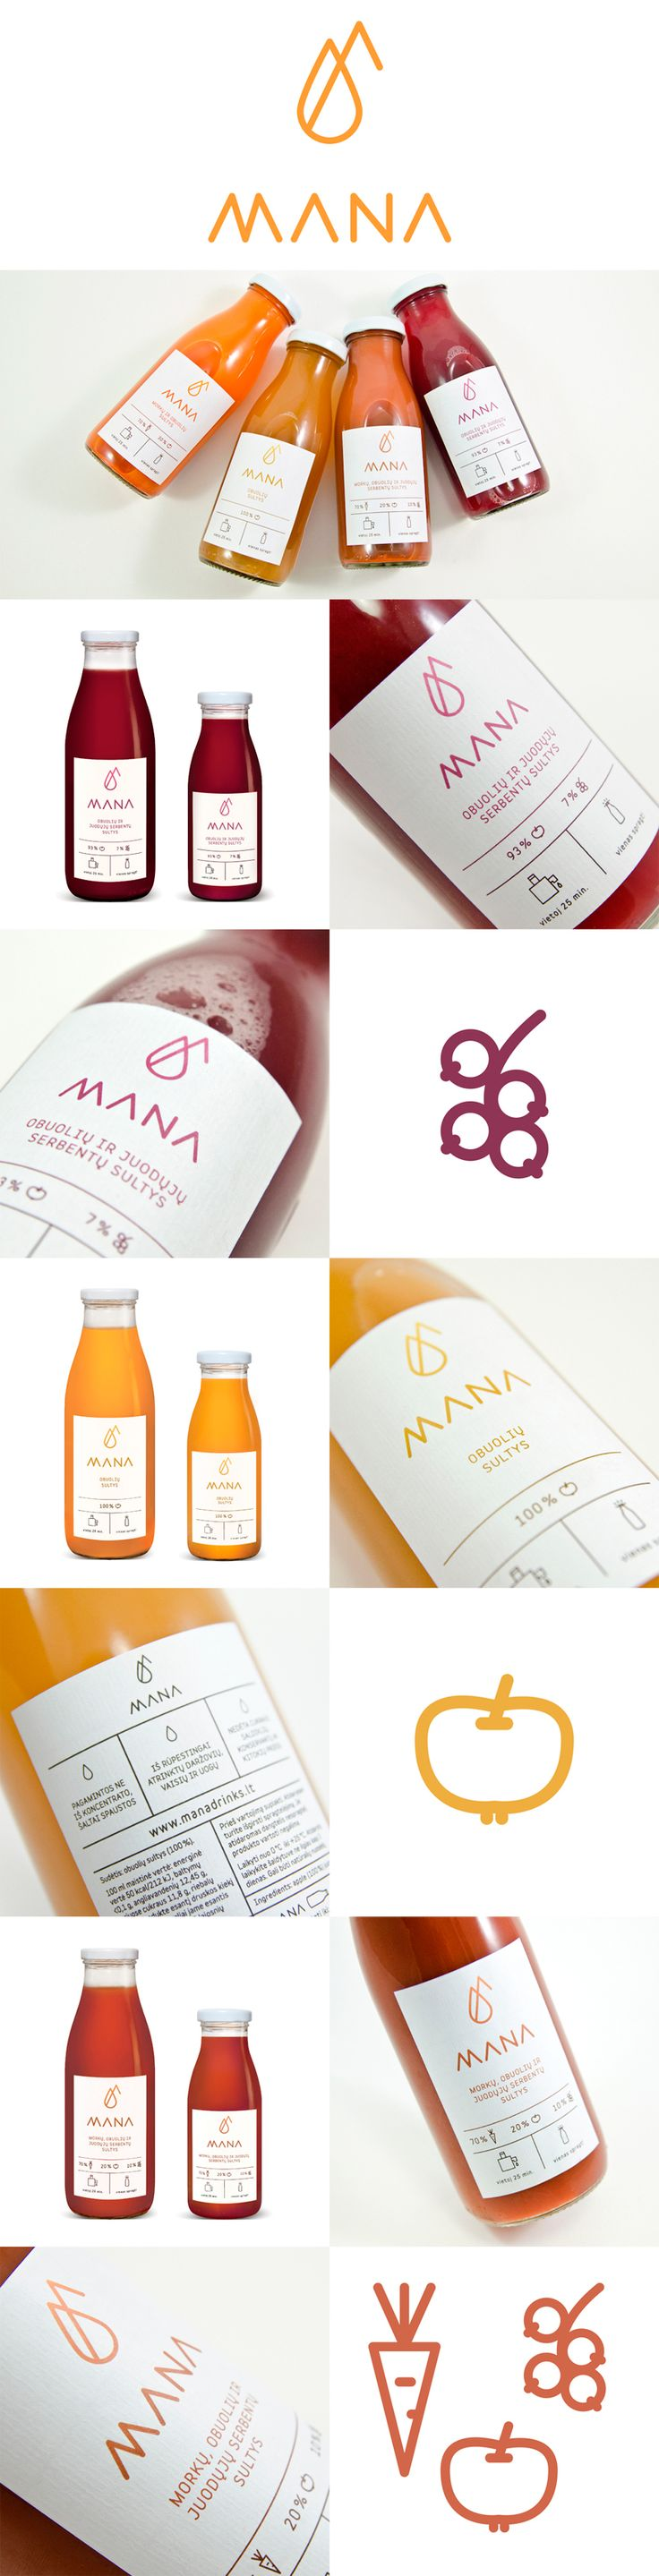 label / mana / juice / food / drink / minimal